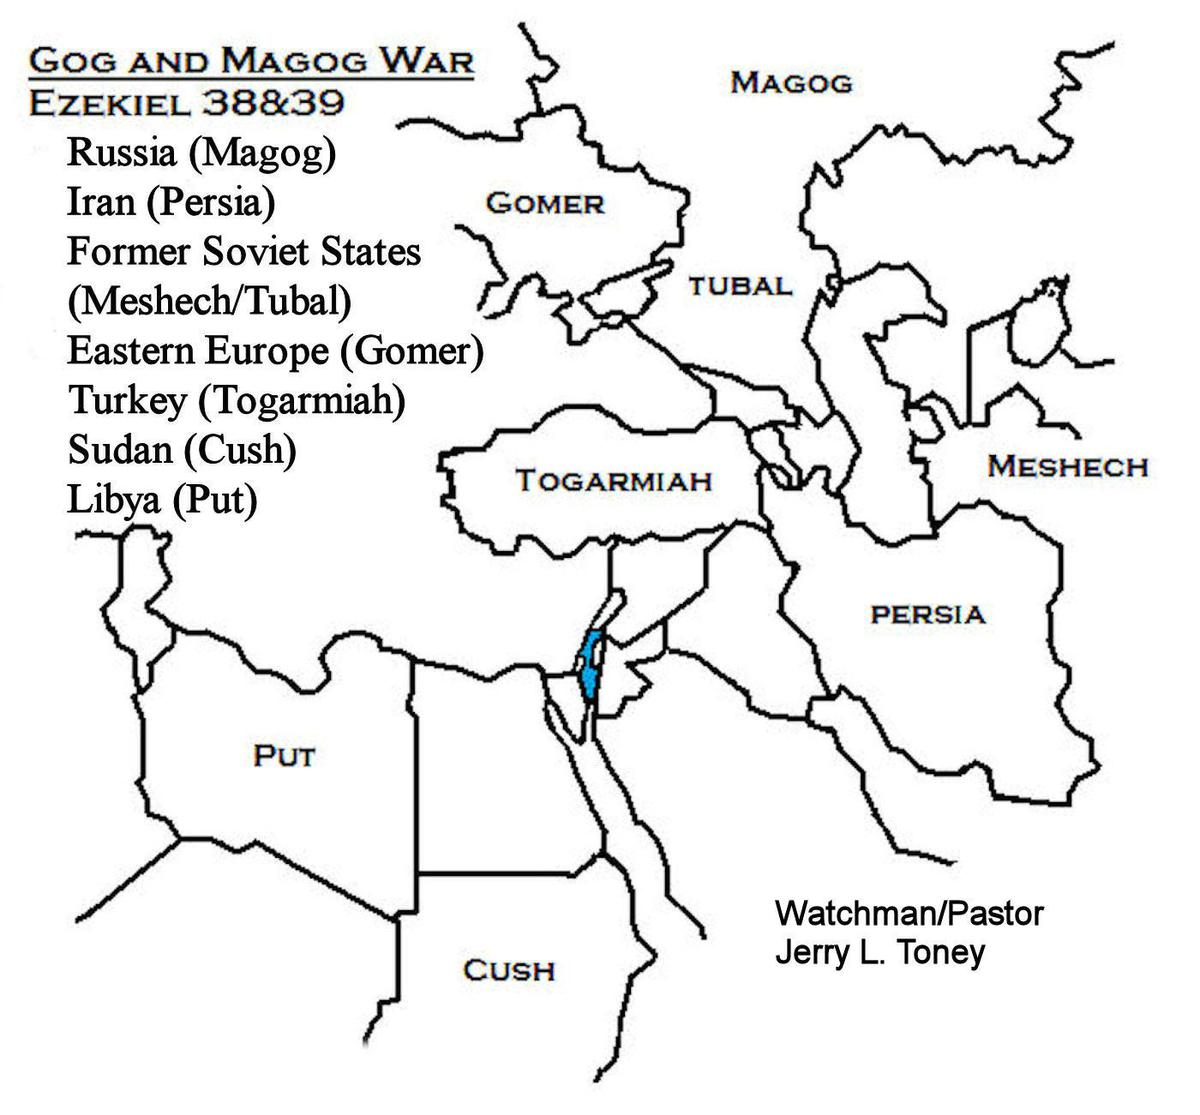 Map for the Magog War